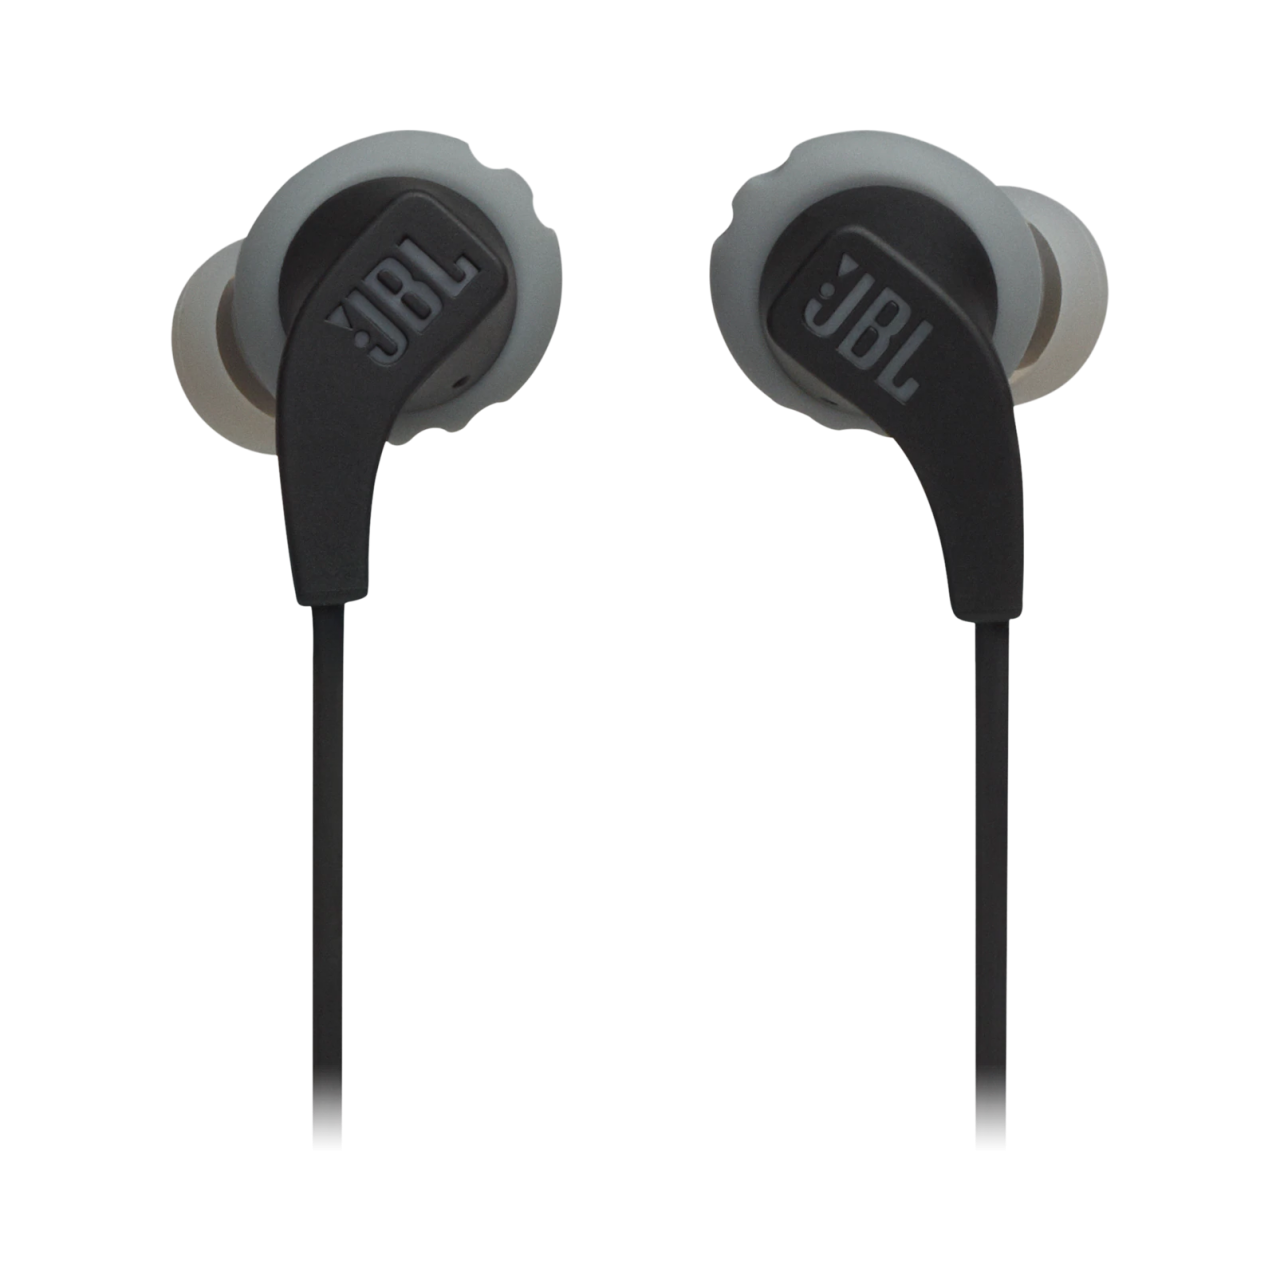 JBL Endurance Run BT Sweat Proof Wireless in-Ear Sport Headphone (Black)